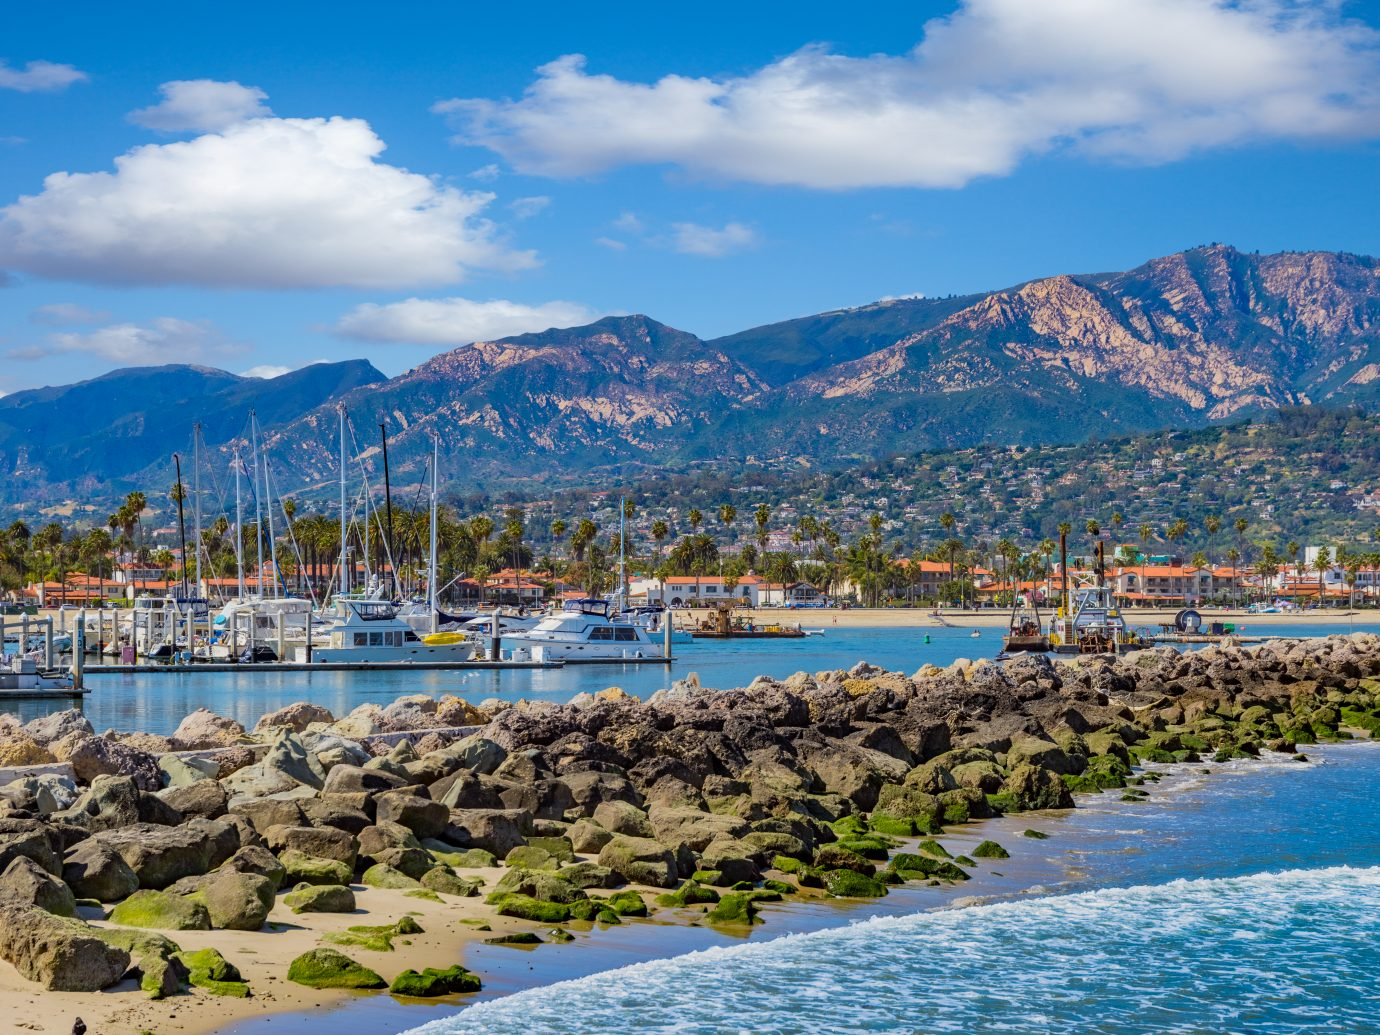 moored recreational boats; California marina scene; safe harbor; Southern California recreation; Santa Barbara Harbor, mountain range, leisure boats, water reflections, clear sky, still water, breakwater